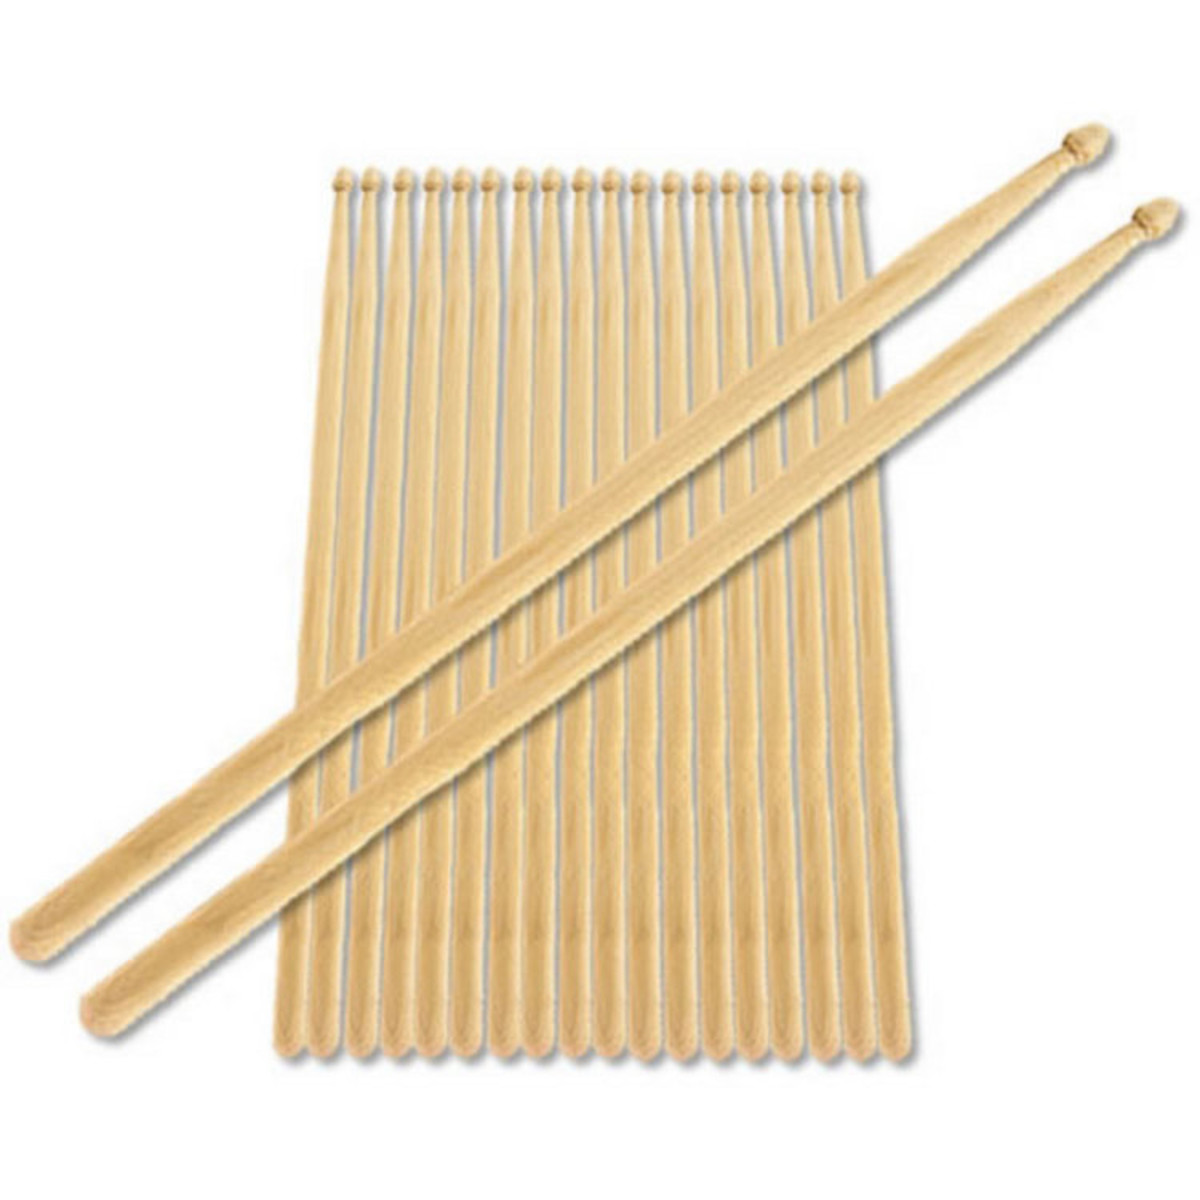 5A Nylon Tip Maple Drumstick Bundle Pack of 10